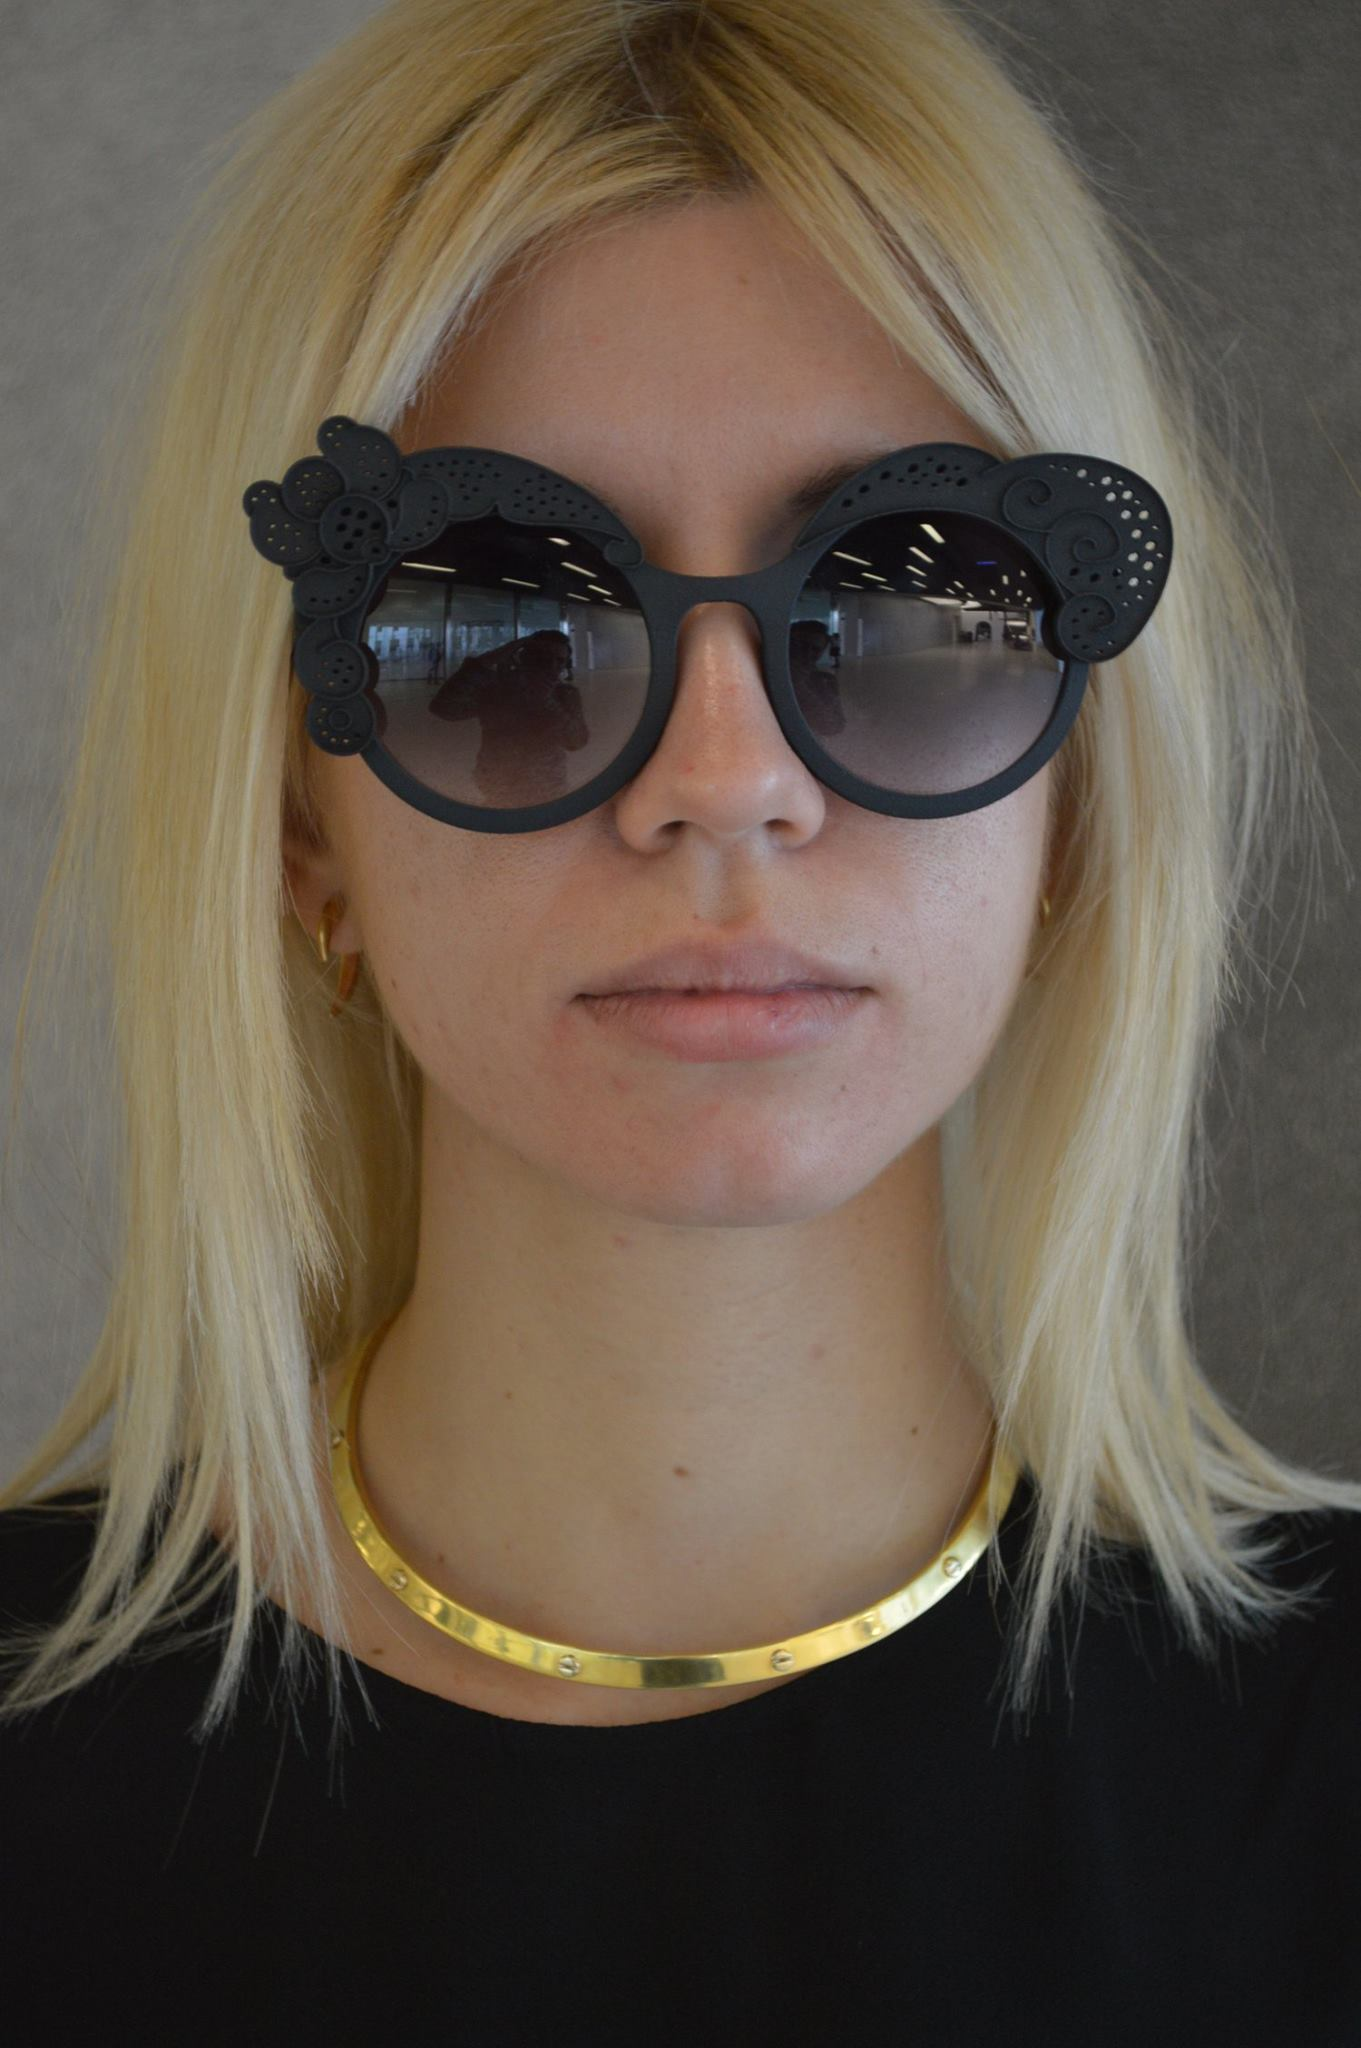 LOVE ME & CHANGE ME – CAMBI_AMI SUNGLASSES